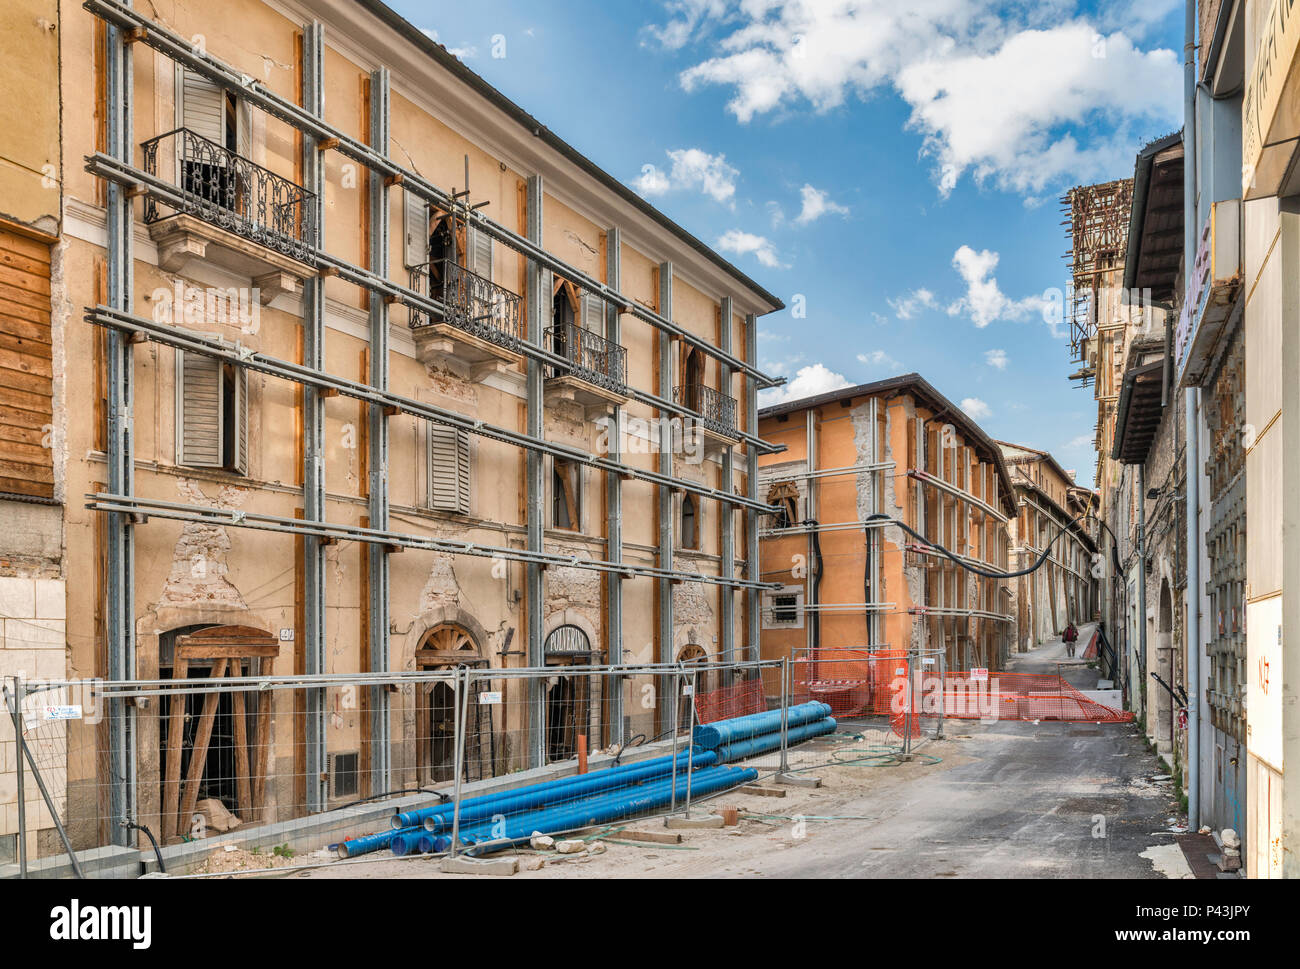 Buildings damaged in 2009 L'Aquila Earthquake, protected by metal beams, 2018 view, Piazza Duomo, L'Aquila, Abruzzo, Italy - Stock Image